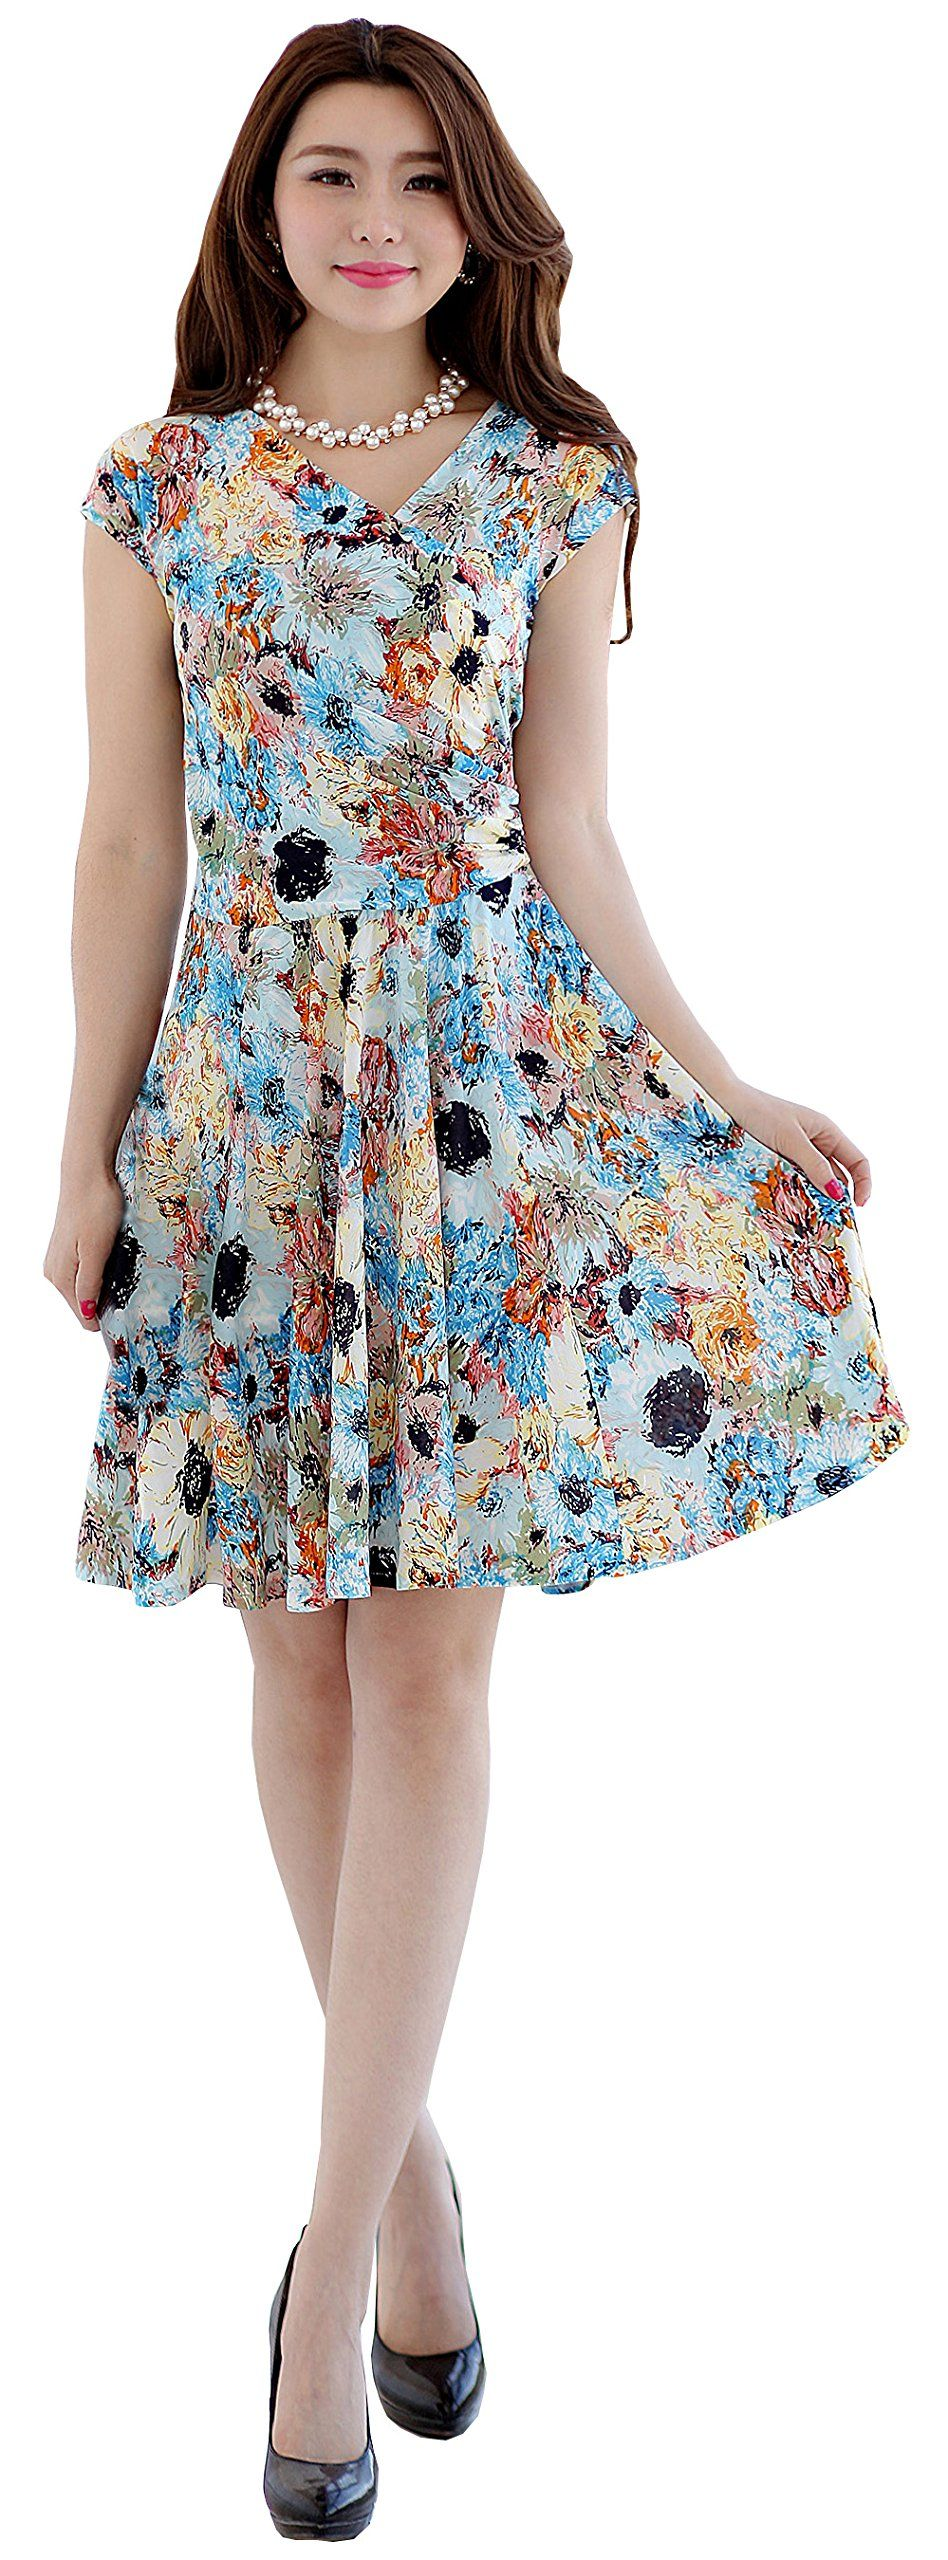 Women V28 Crossover V-neck short sleeve Polka dot pleated floral summer Dress